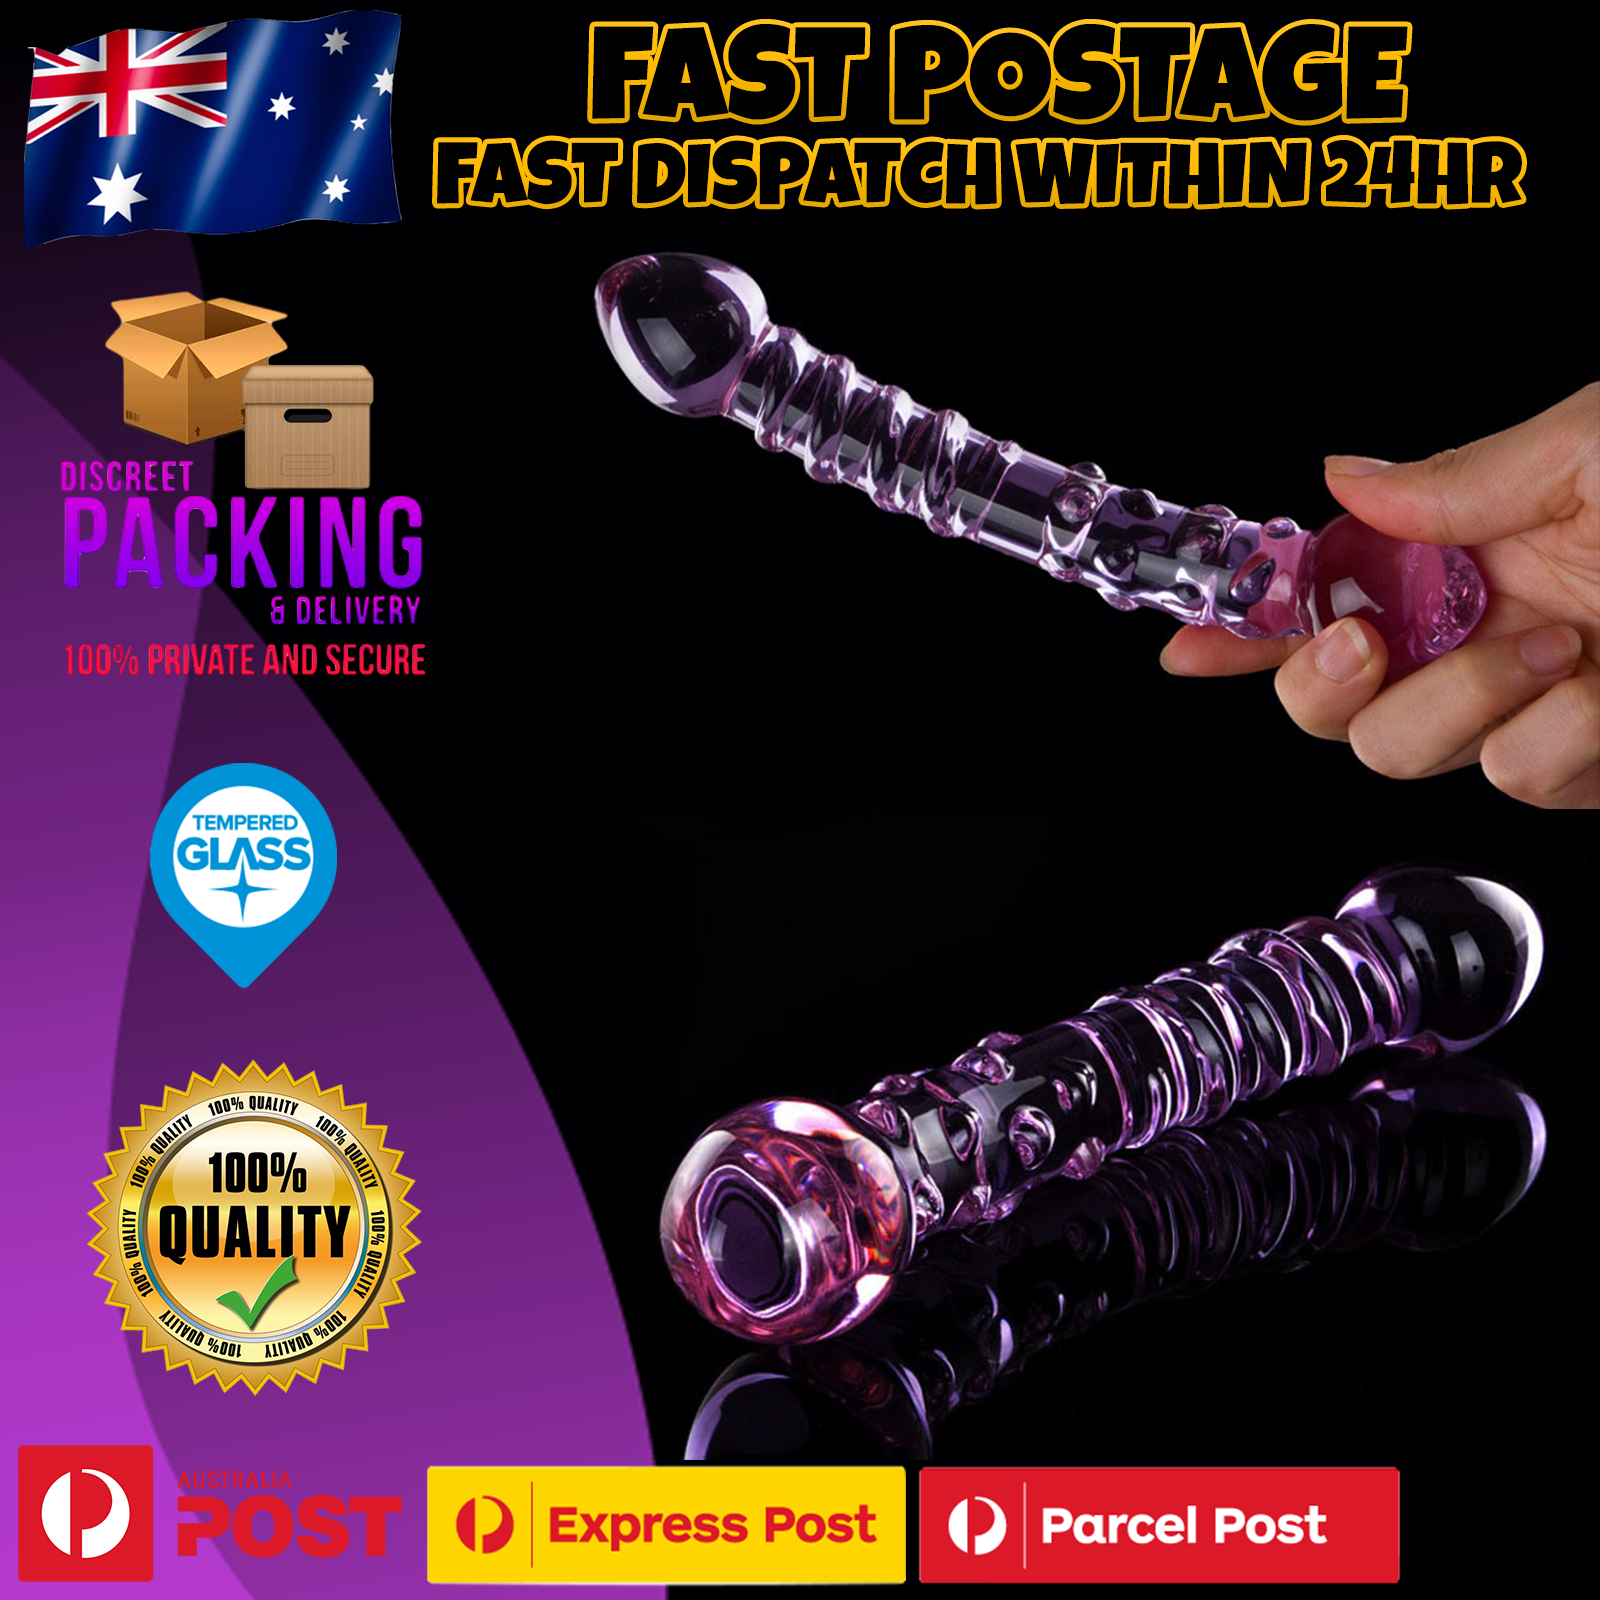 Details about Double Ended Glass Anal Butt Plug G-Spot Dildo Dong Anal  Beads Adult/Sex Toy NEW